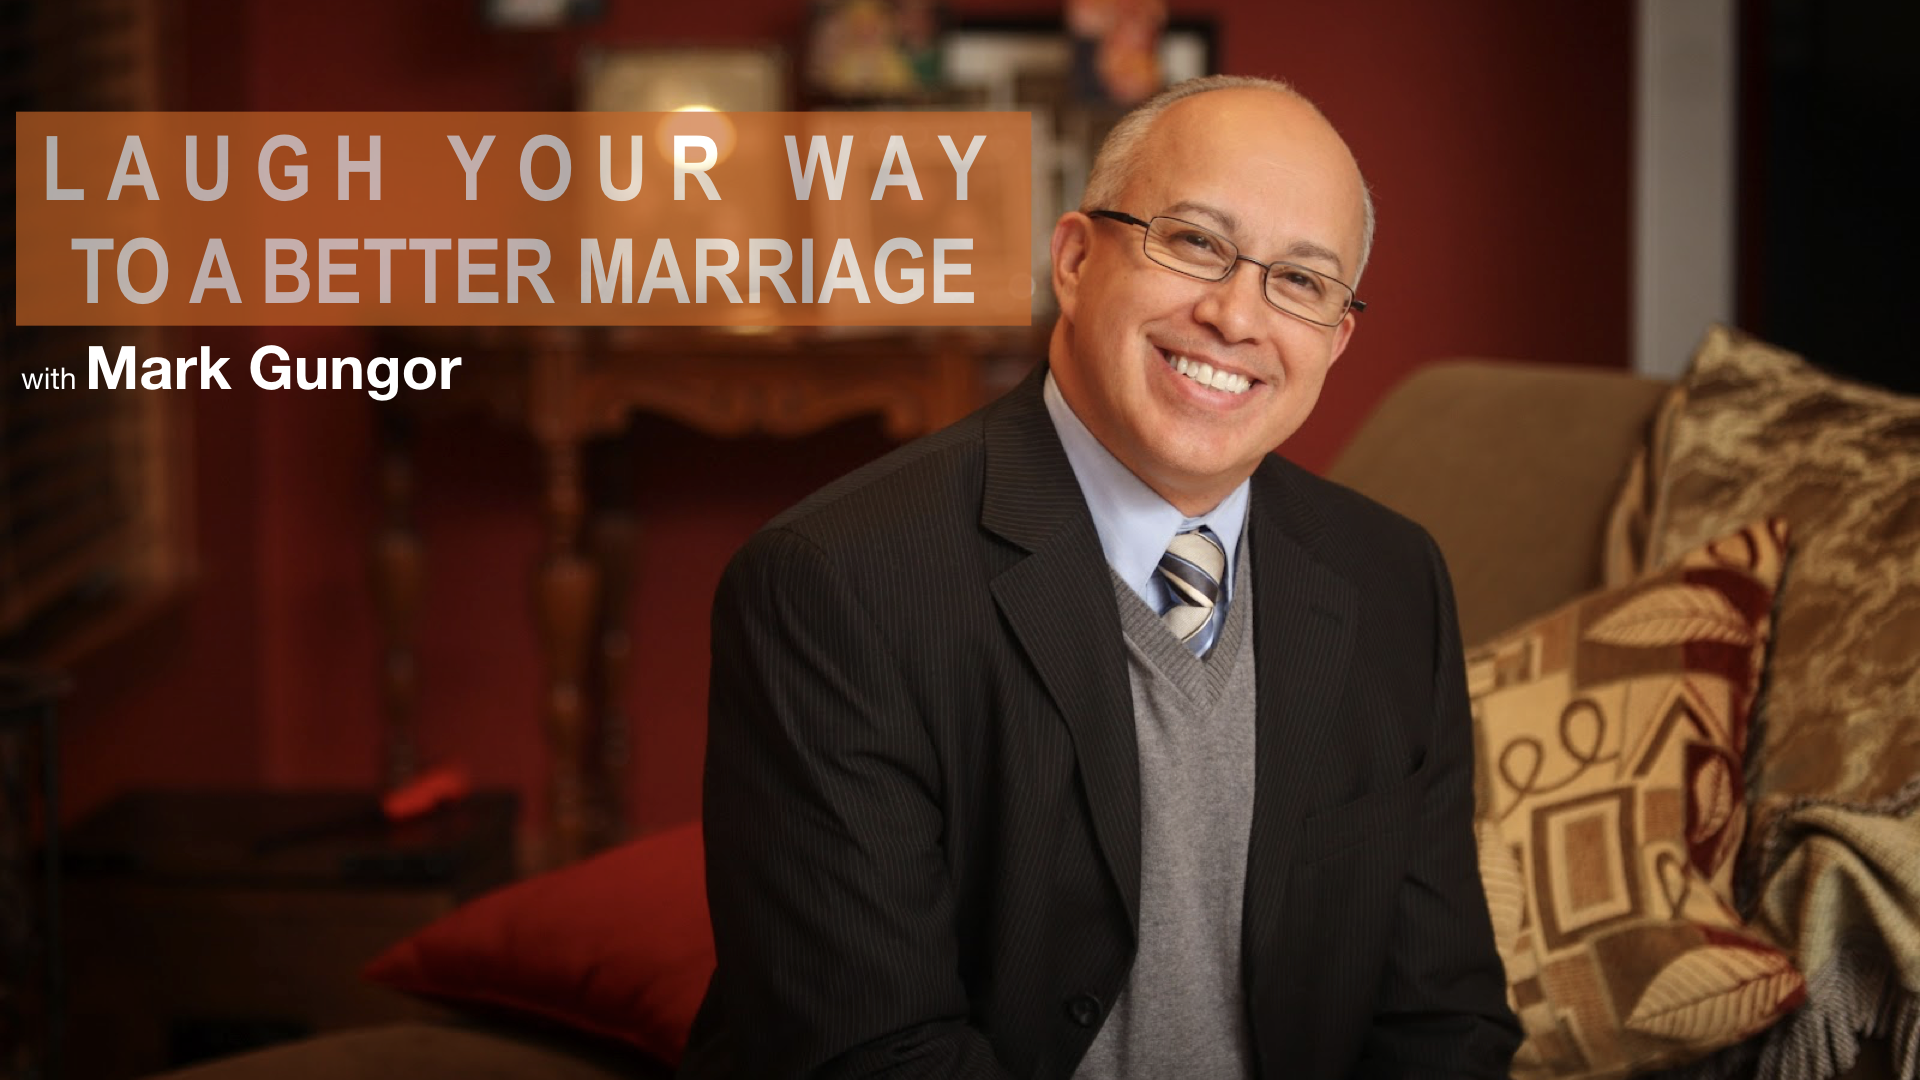 Growing in loveand life together. - Mark Gungor's popular marriage series takes an honest, hard-hitting and hilarious approach to tackling the underlying dynamics of male/female relationships and strengthening marriage bonds.